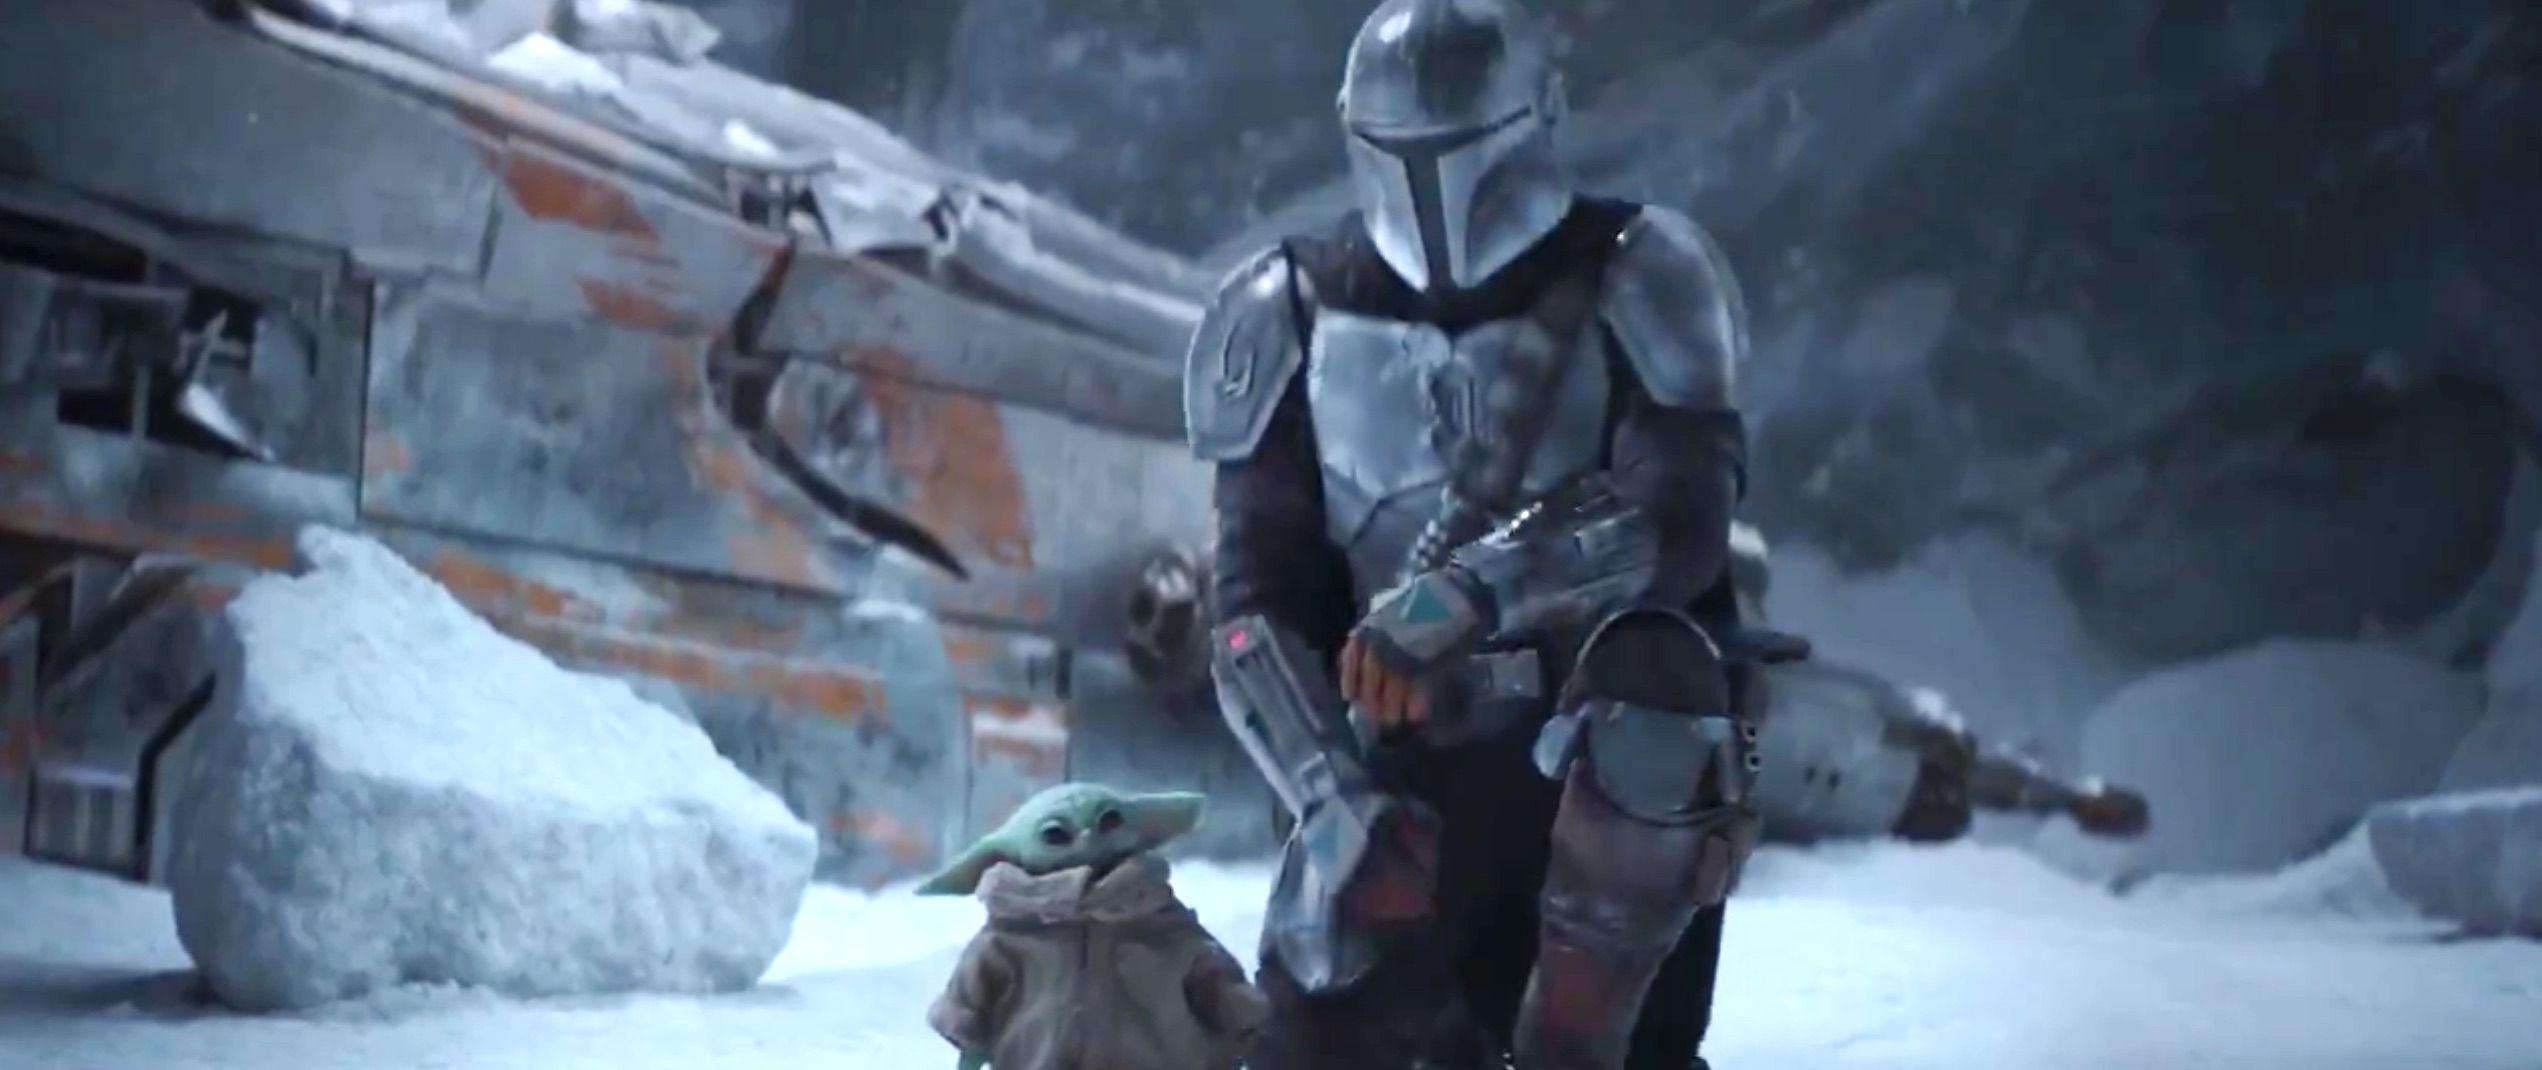 The Mandalorian Releasing New Gear Ahead Of Season 2